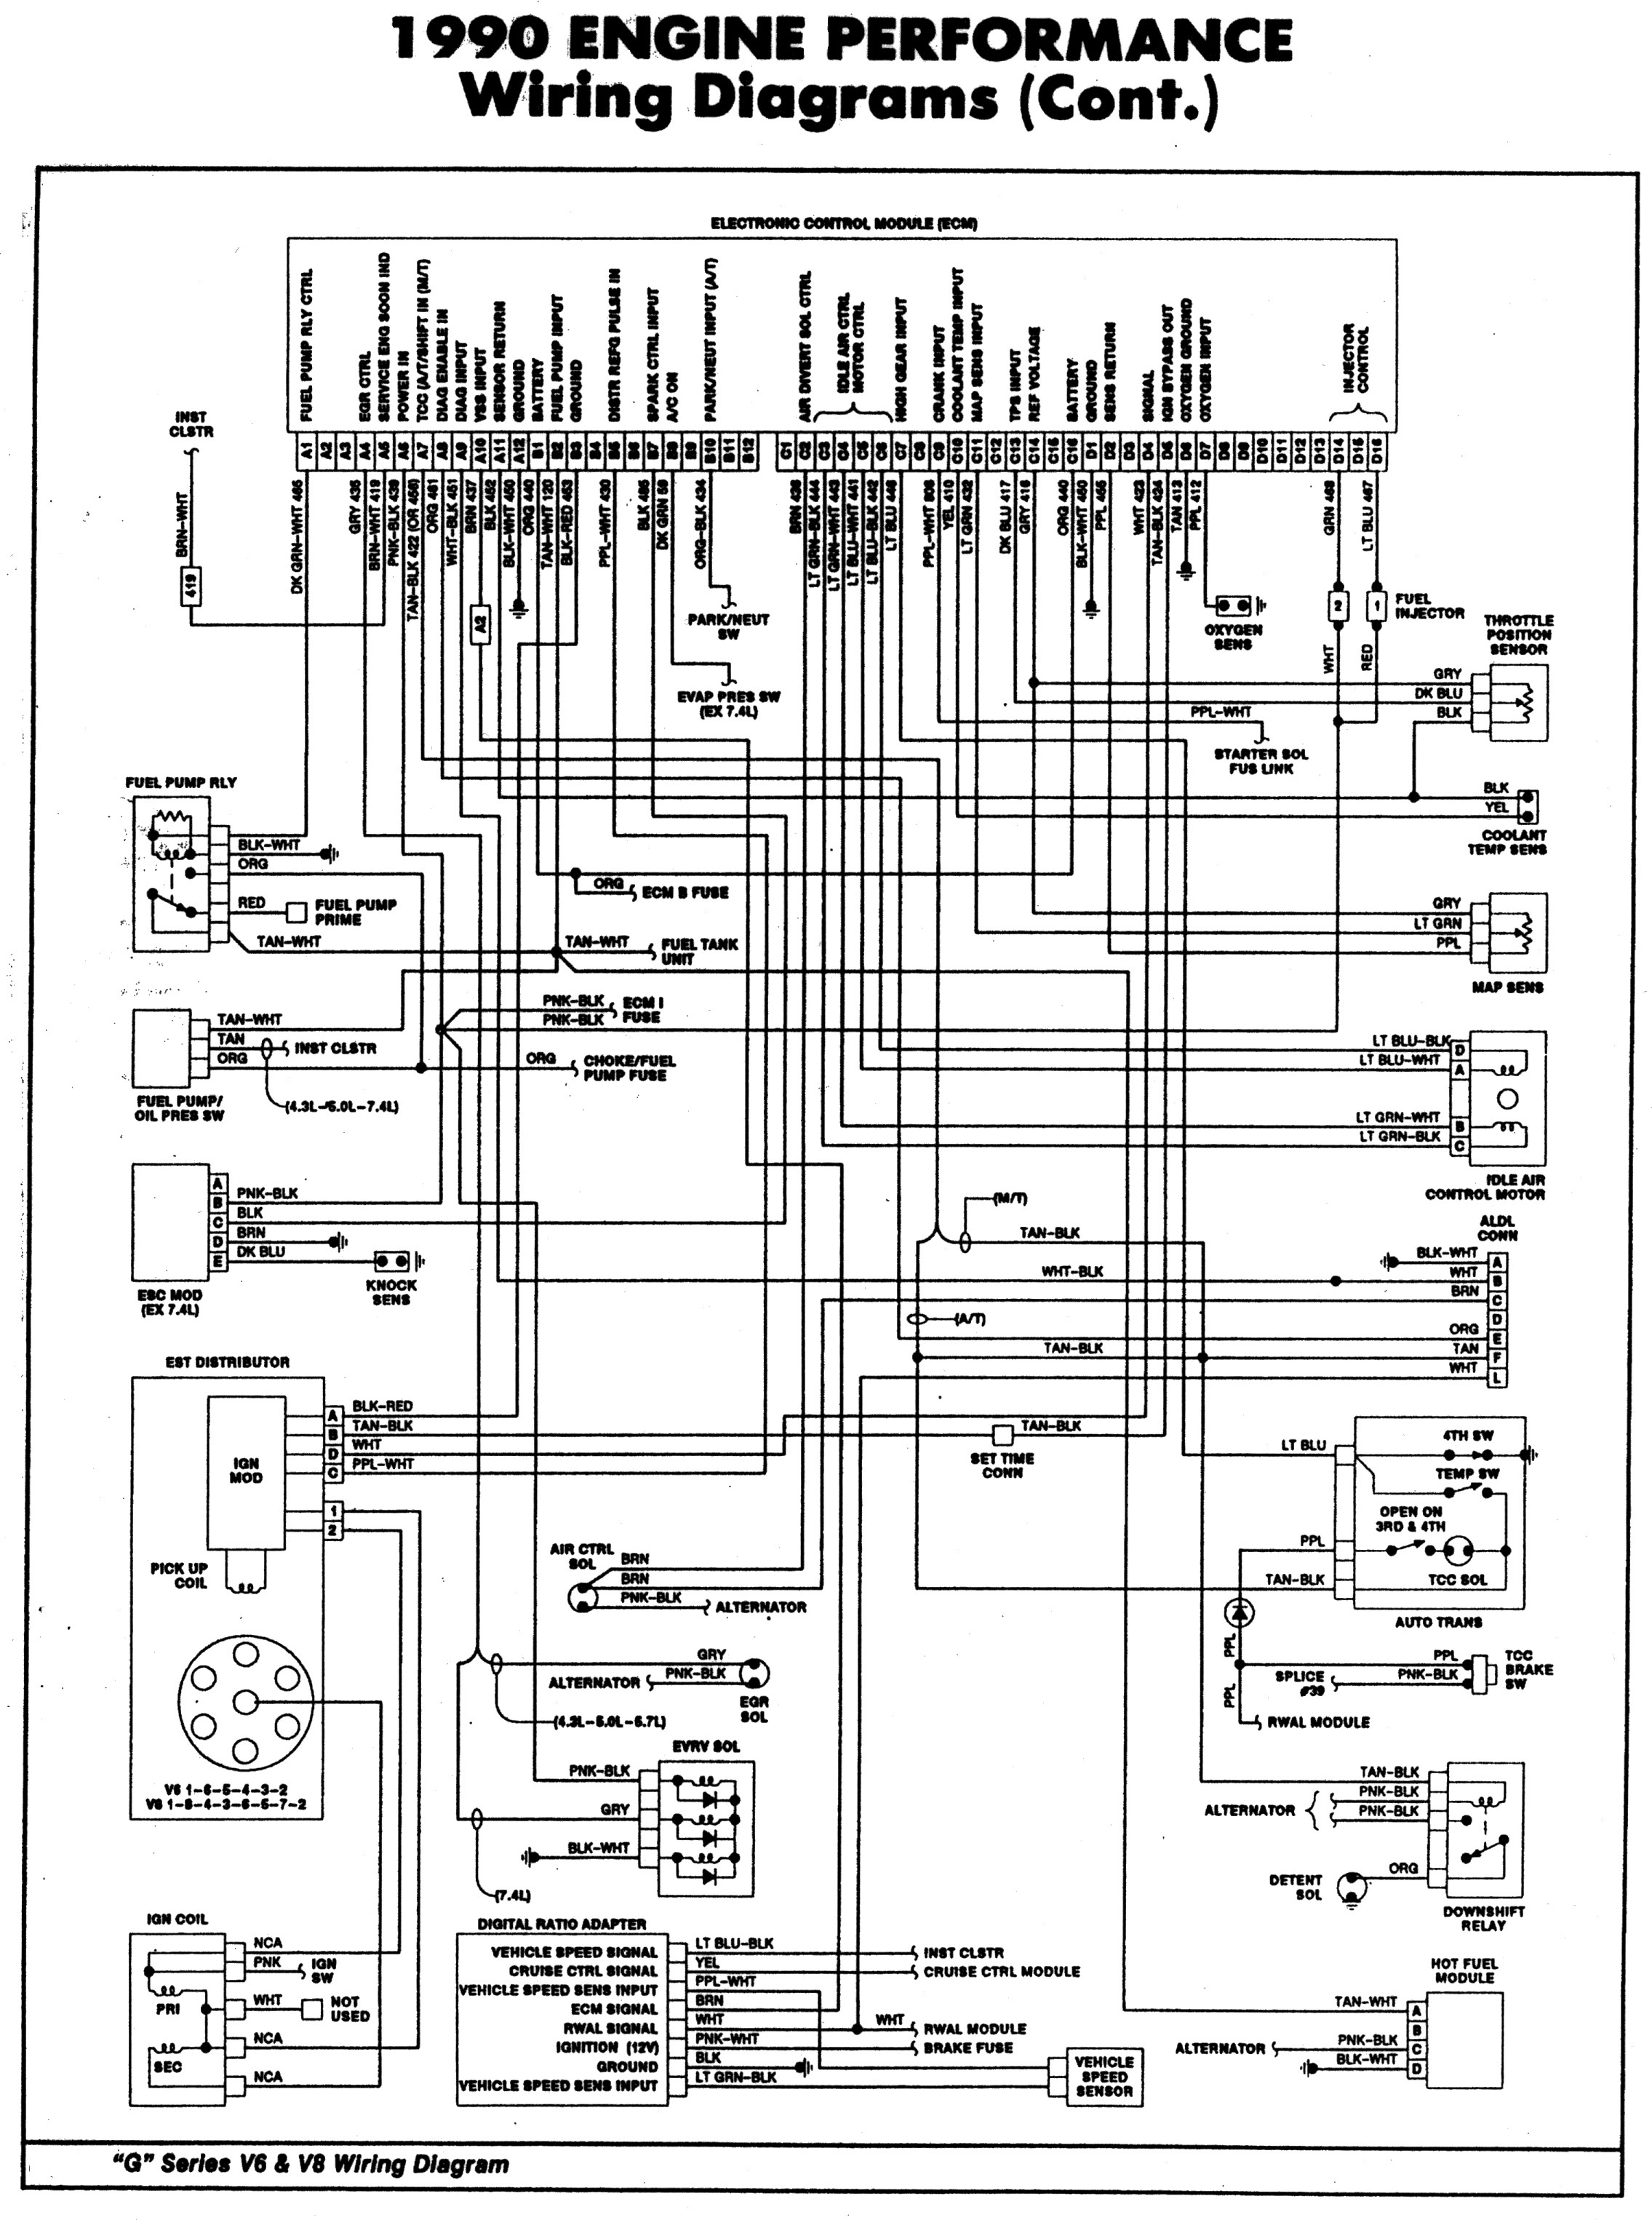 hight resolution of wrg 1641 psl 2000 smoke detector wiring diagram 1990 chevy wiring diagram wiring diagram schematics